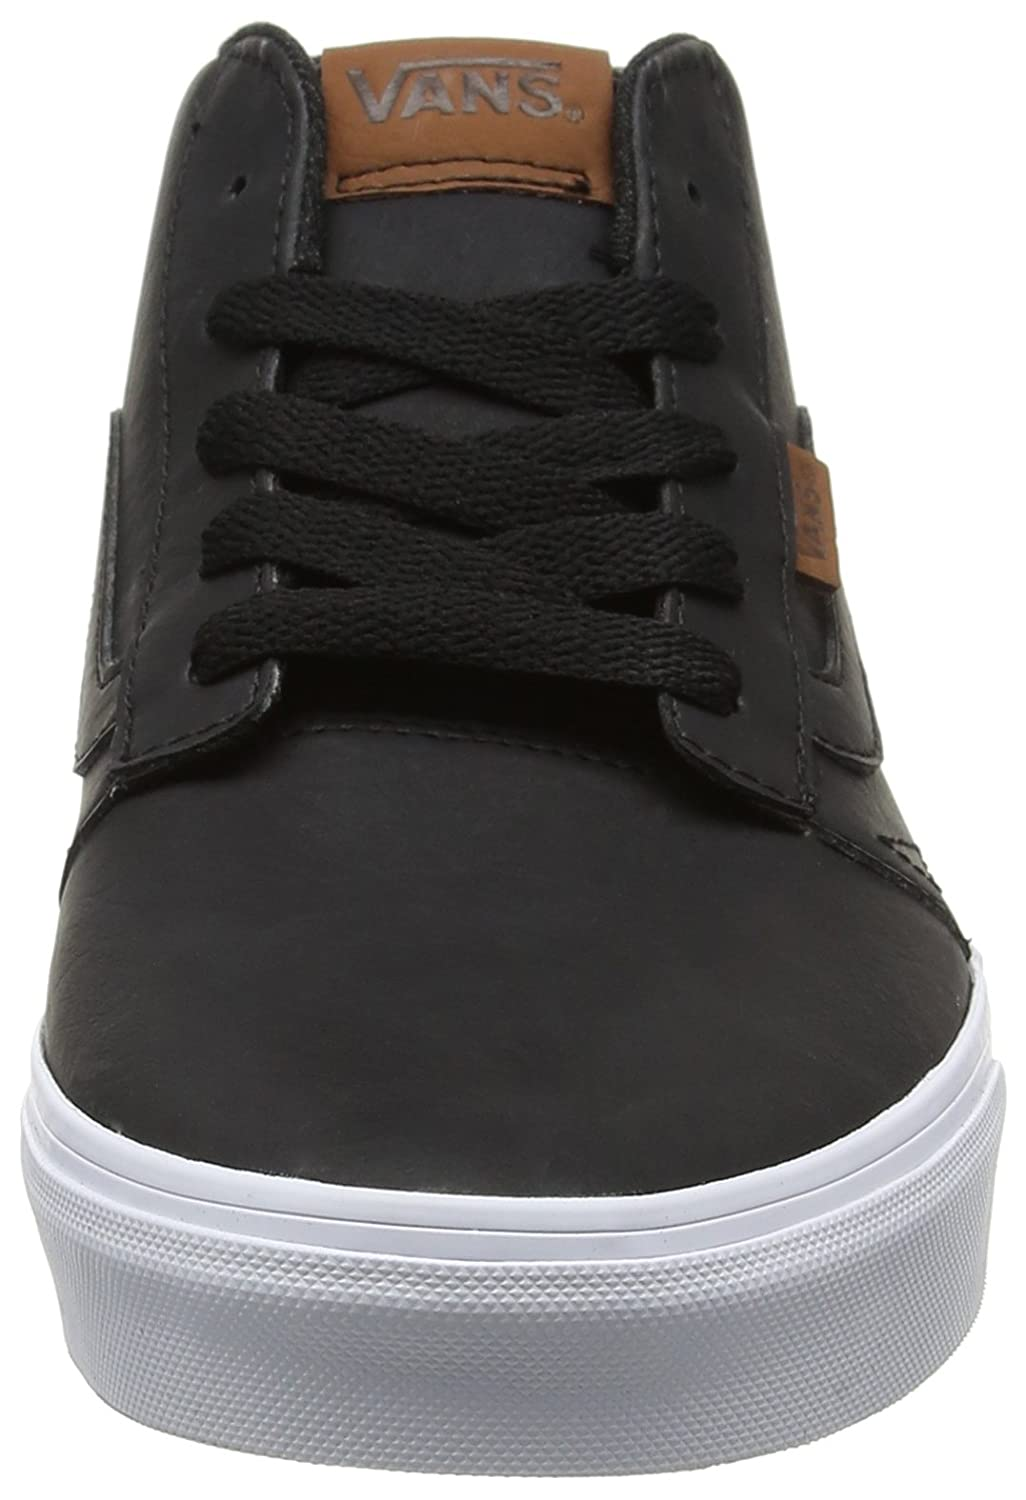 919d8fc7e0 Vans Men s Chapman Mid Trainers  Amazon.co.uk  Shoes   Bags